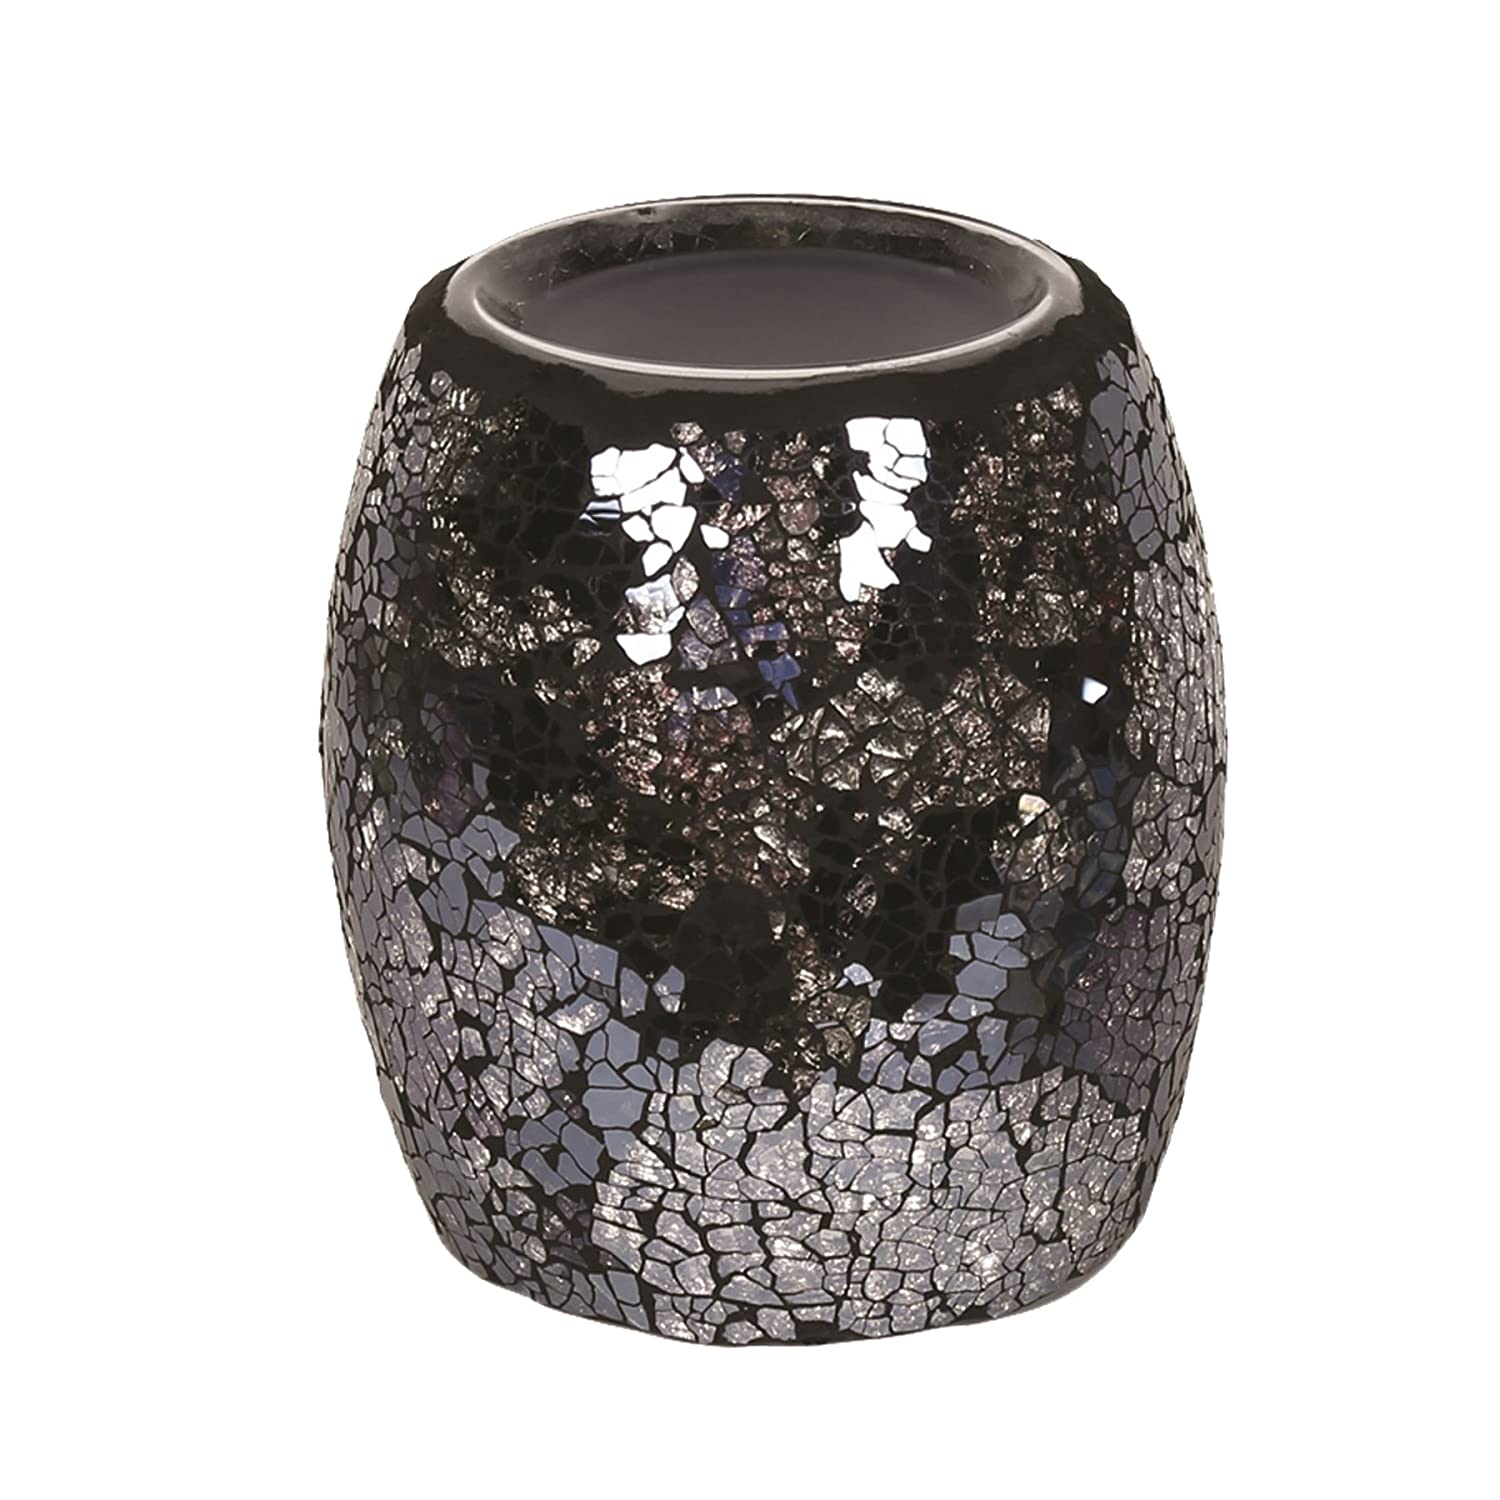 Astin of London - Aroma Accessories Electric Wax Tart Melt Burner Lamp Black & Silver Crackle Scented Fragrance Aroma Warmer - Hand Crafted